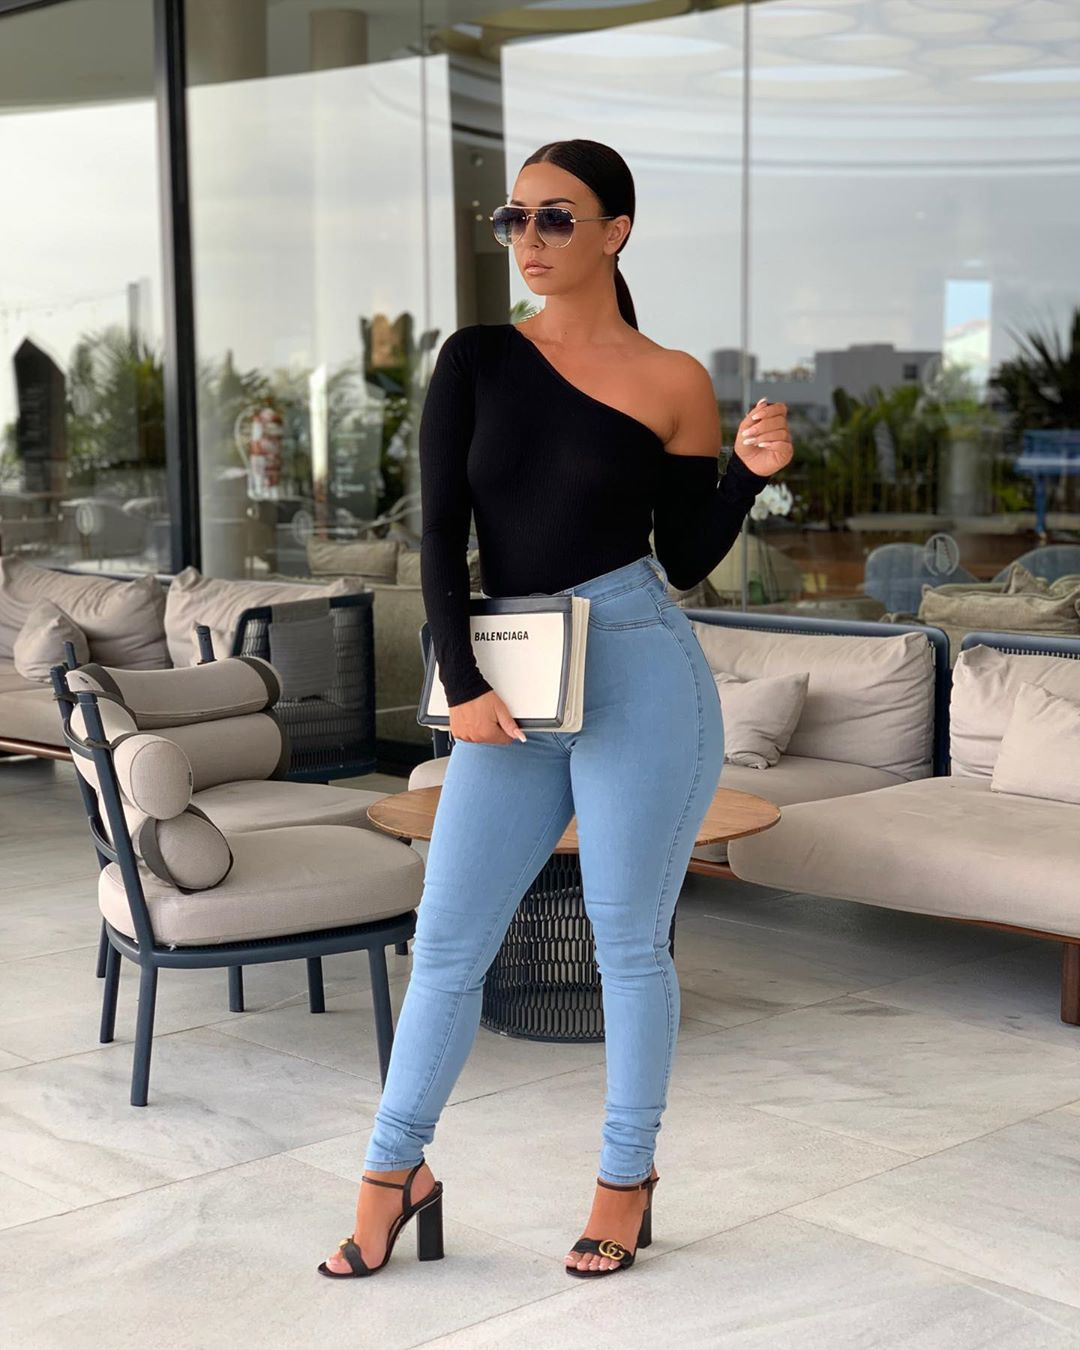 white dresses ideas with trousers, jeans, hot legs